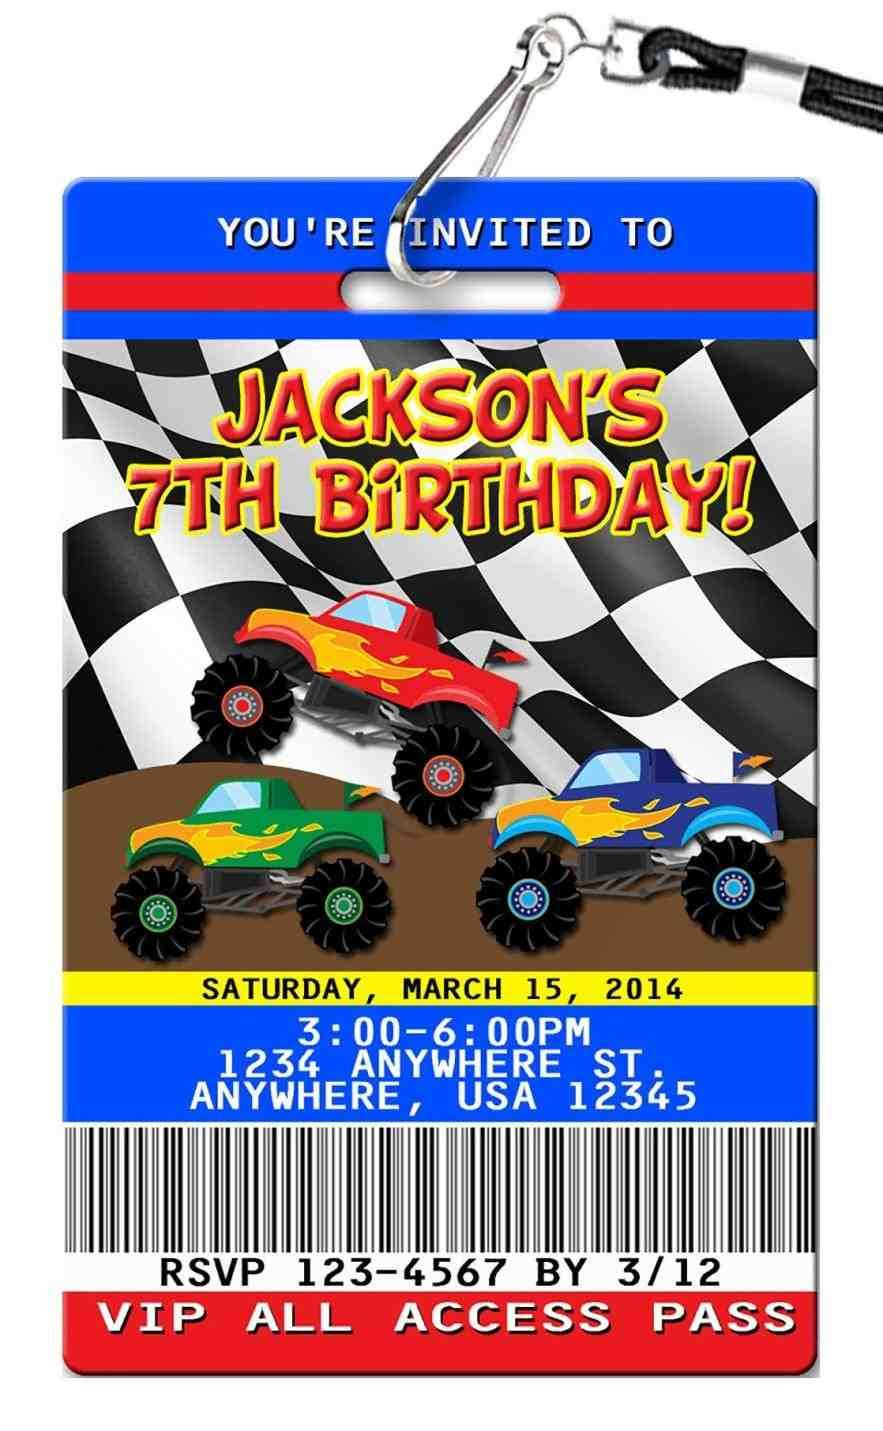 Batman birthday invitations walmart for design walmart invitations batman birthday invitations walmart for design walmart invitations examples bemerkenswert very amazing 5 monster truck birthday invitation t shirt full filmwisefo